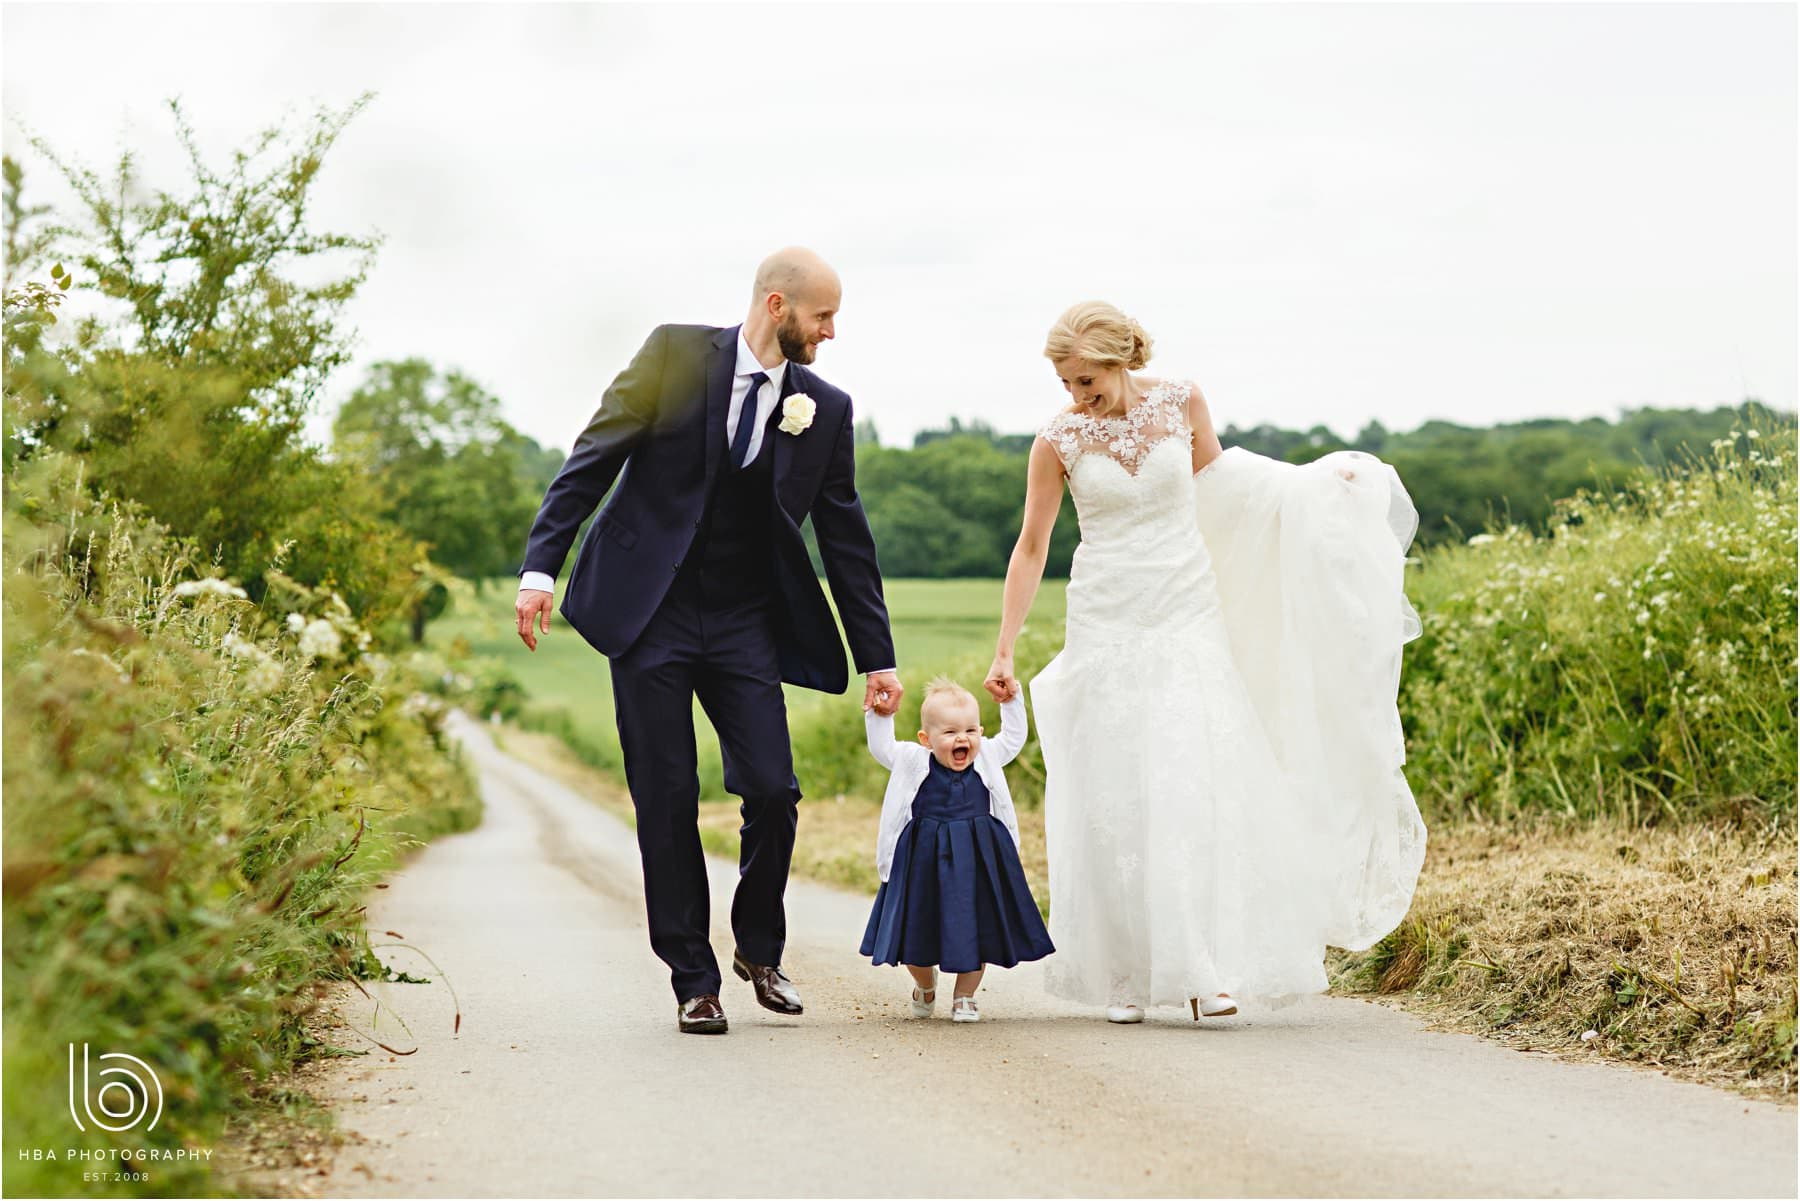 the bride & groom walking with their daughter